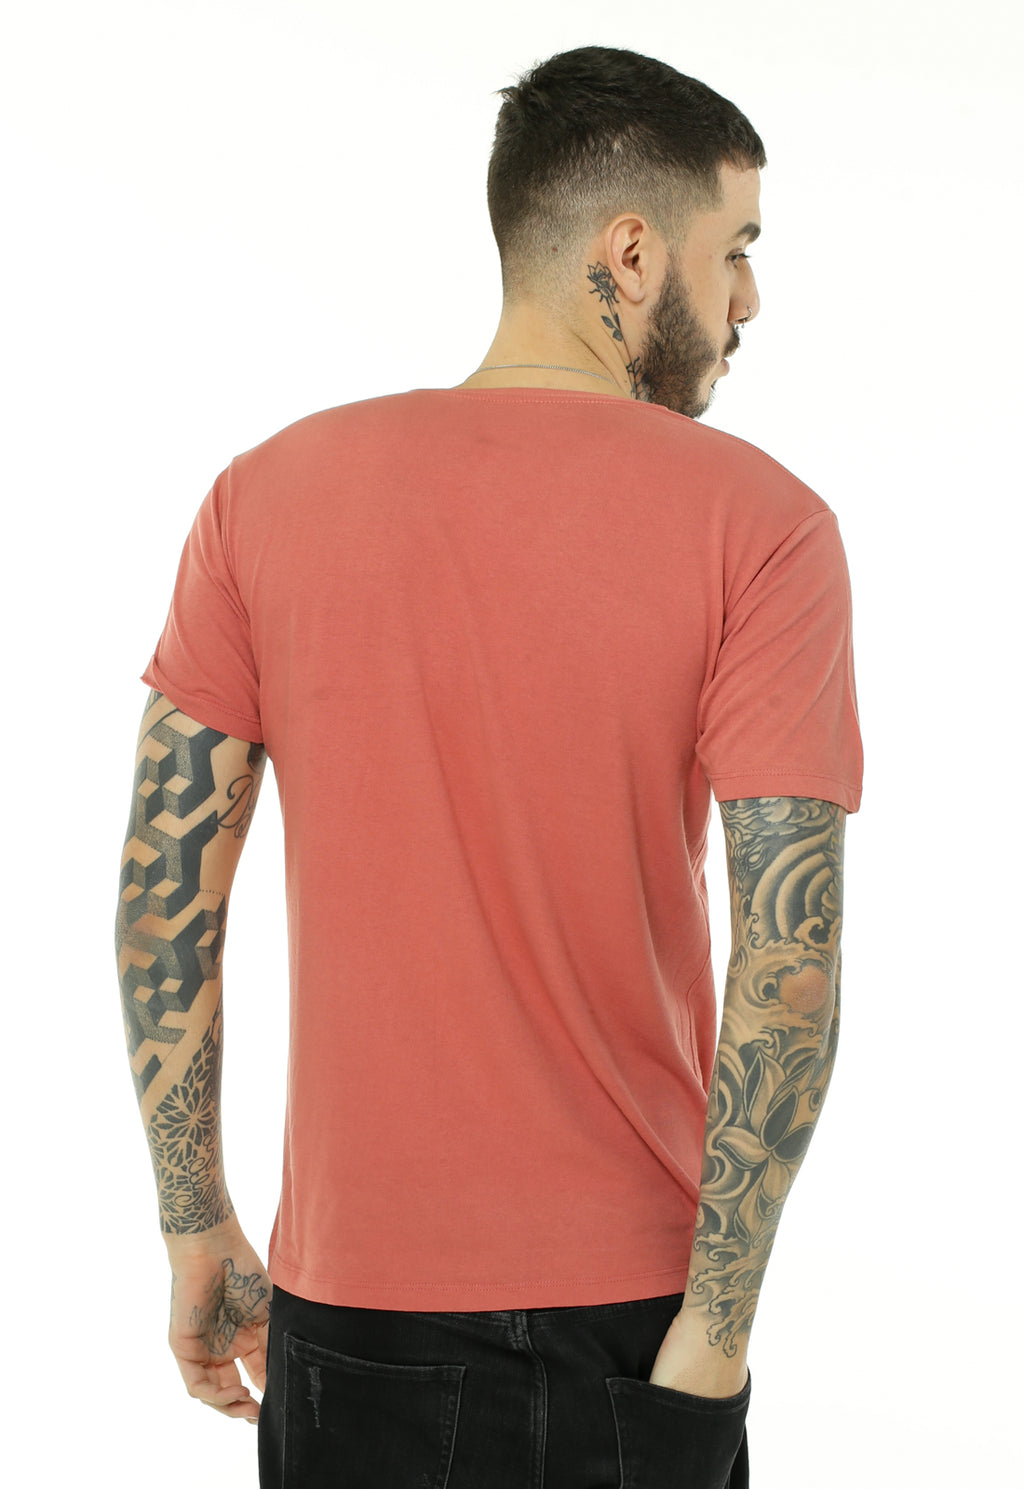 CAMISETA MASCULINA BOSSA BRASIL ESTAMPADA - SEX DRUGS